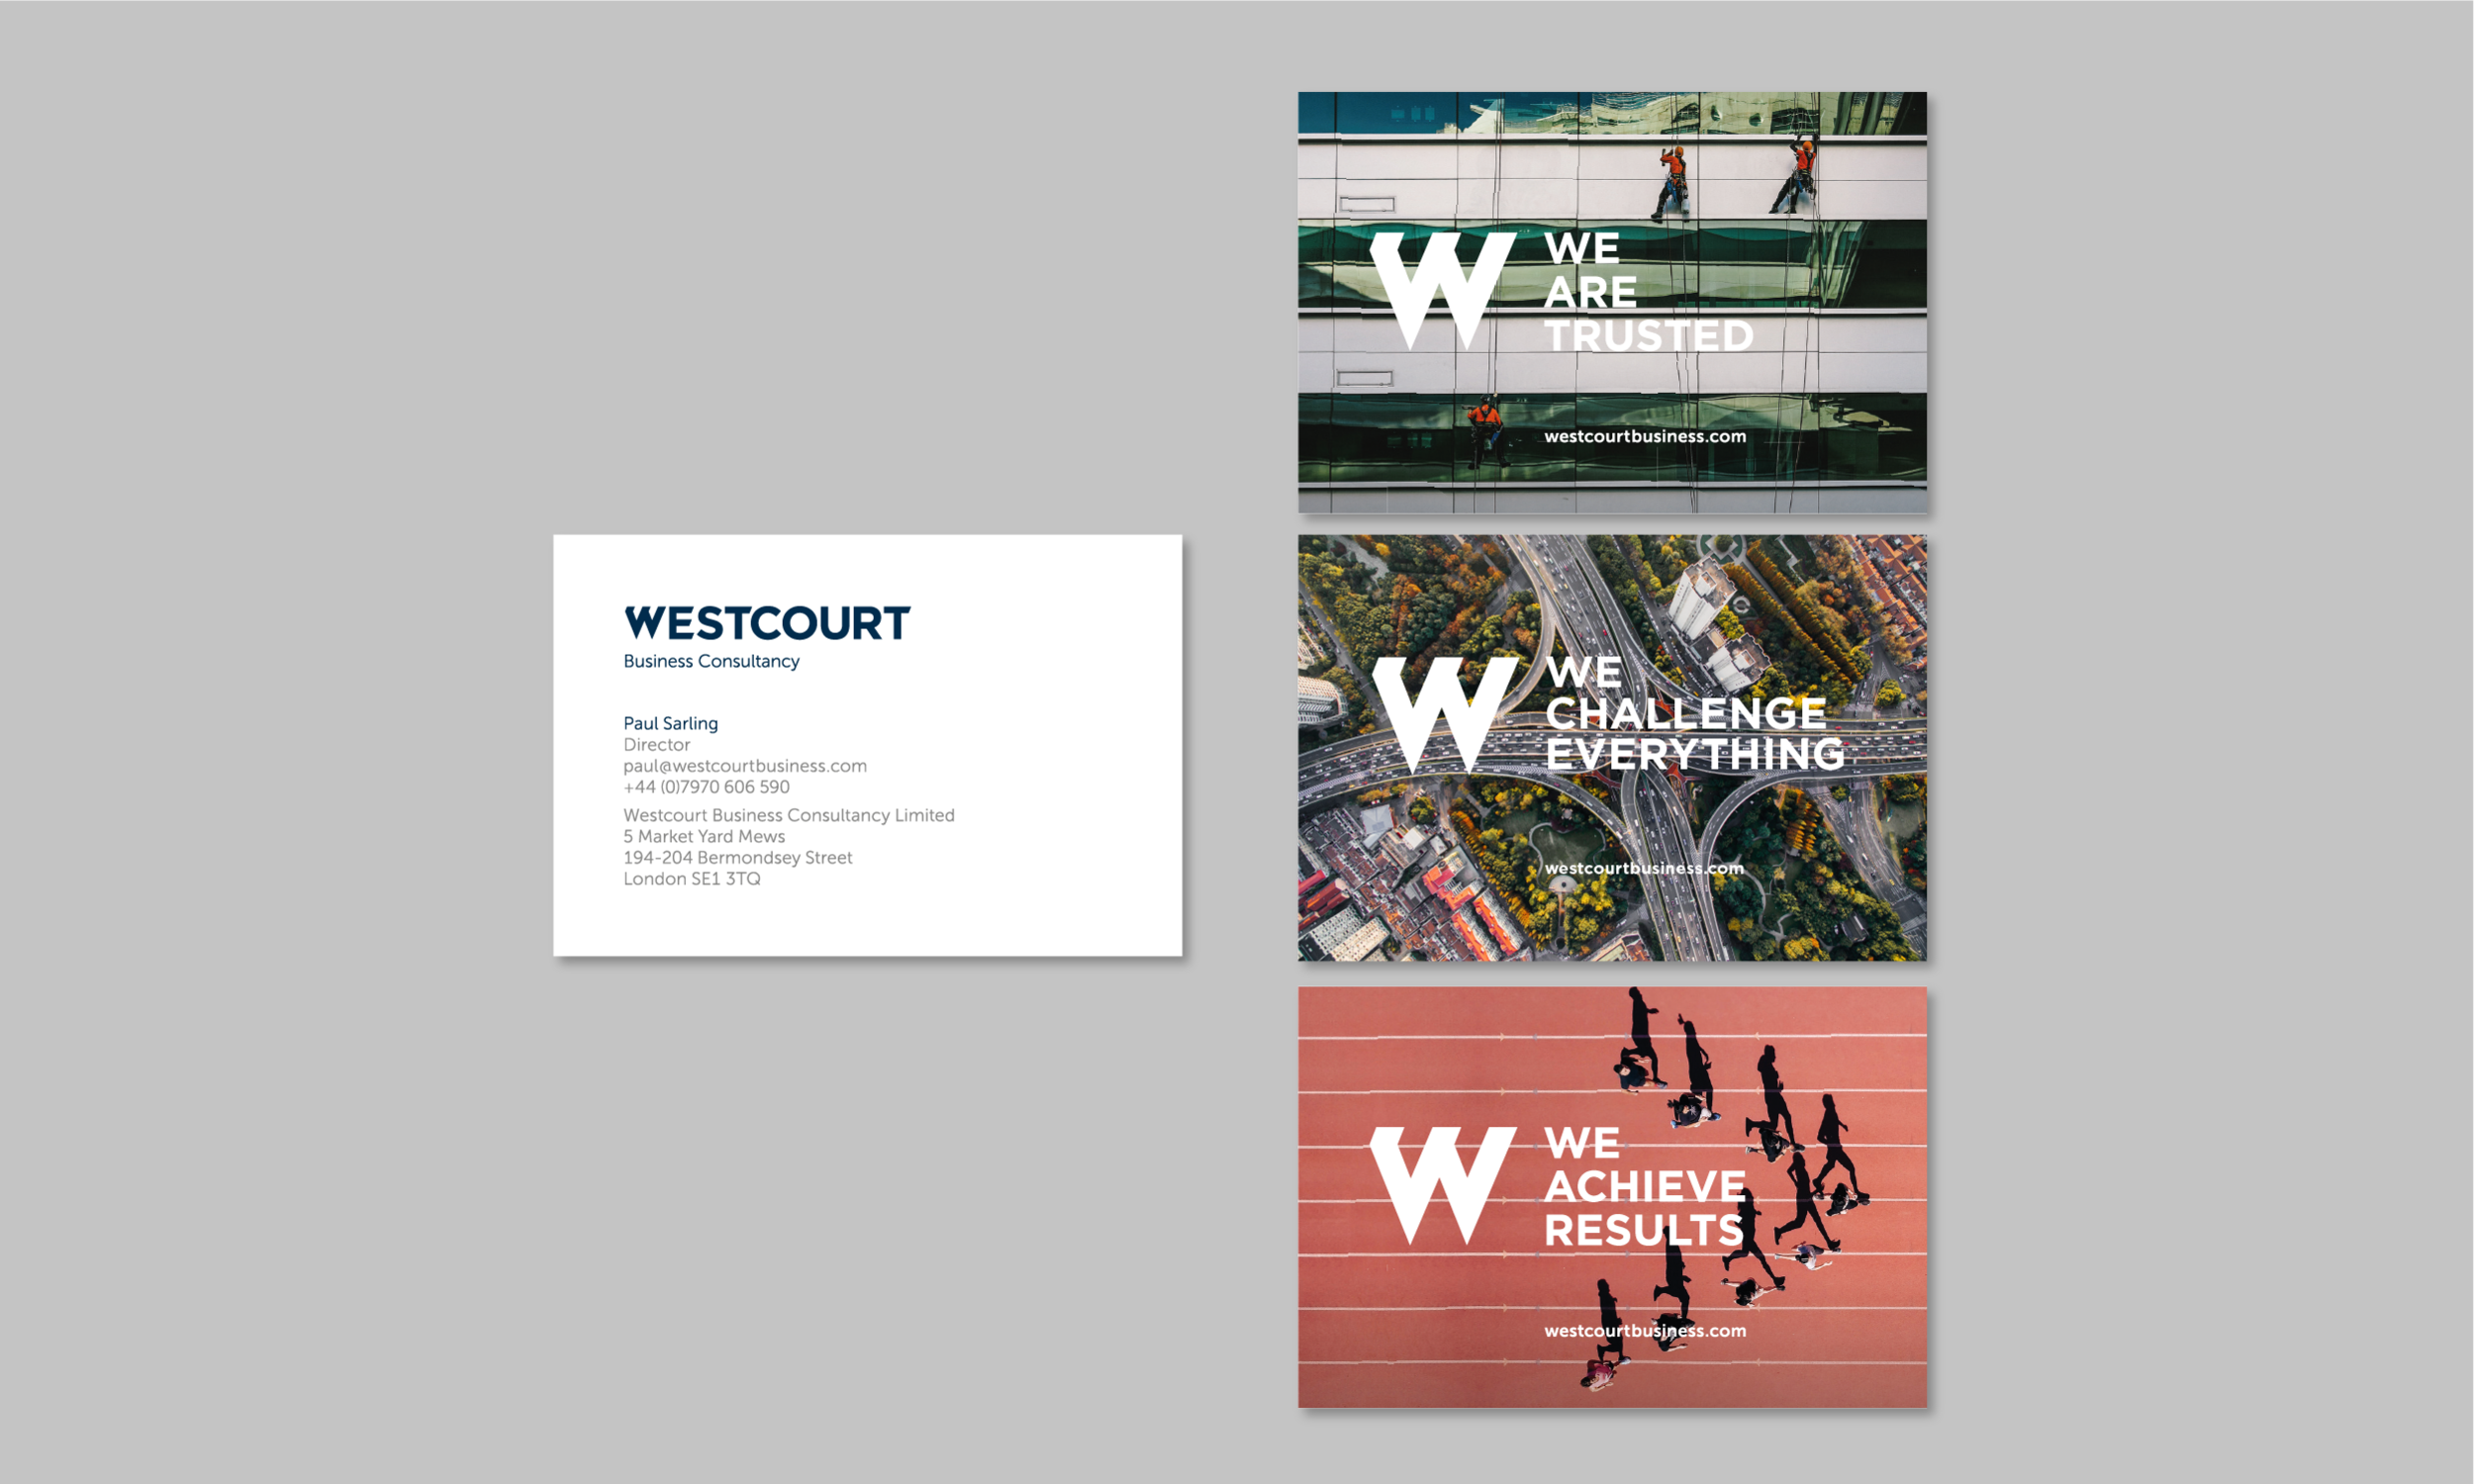 Westcourt-Business-Consultancy-Tunbridge-StudioArtboard 1 copy 3.png